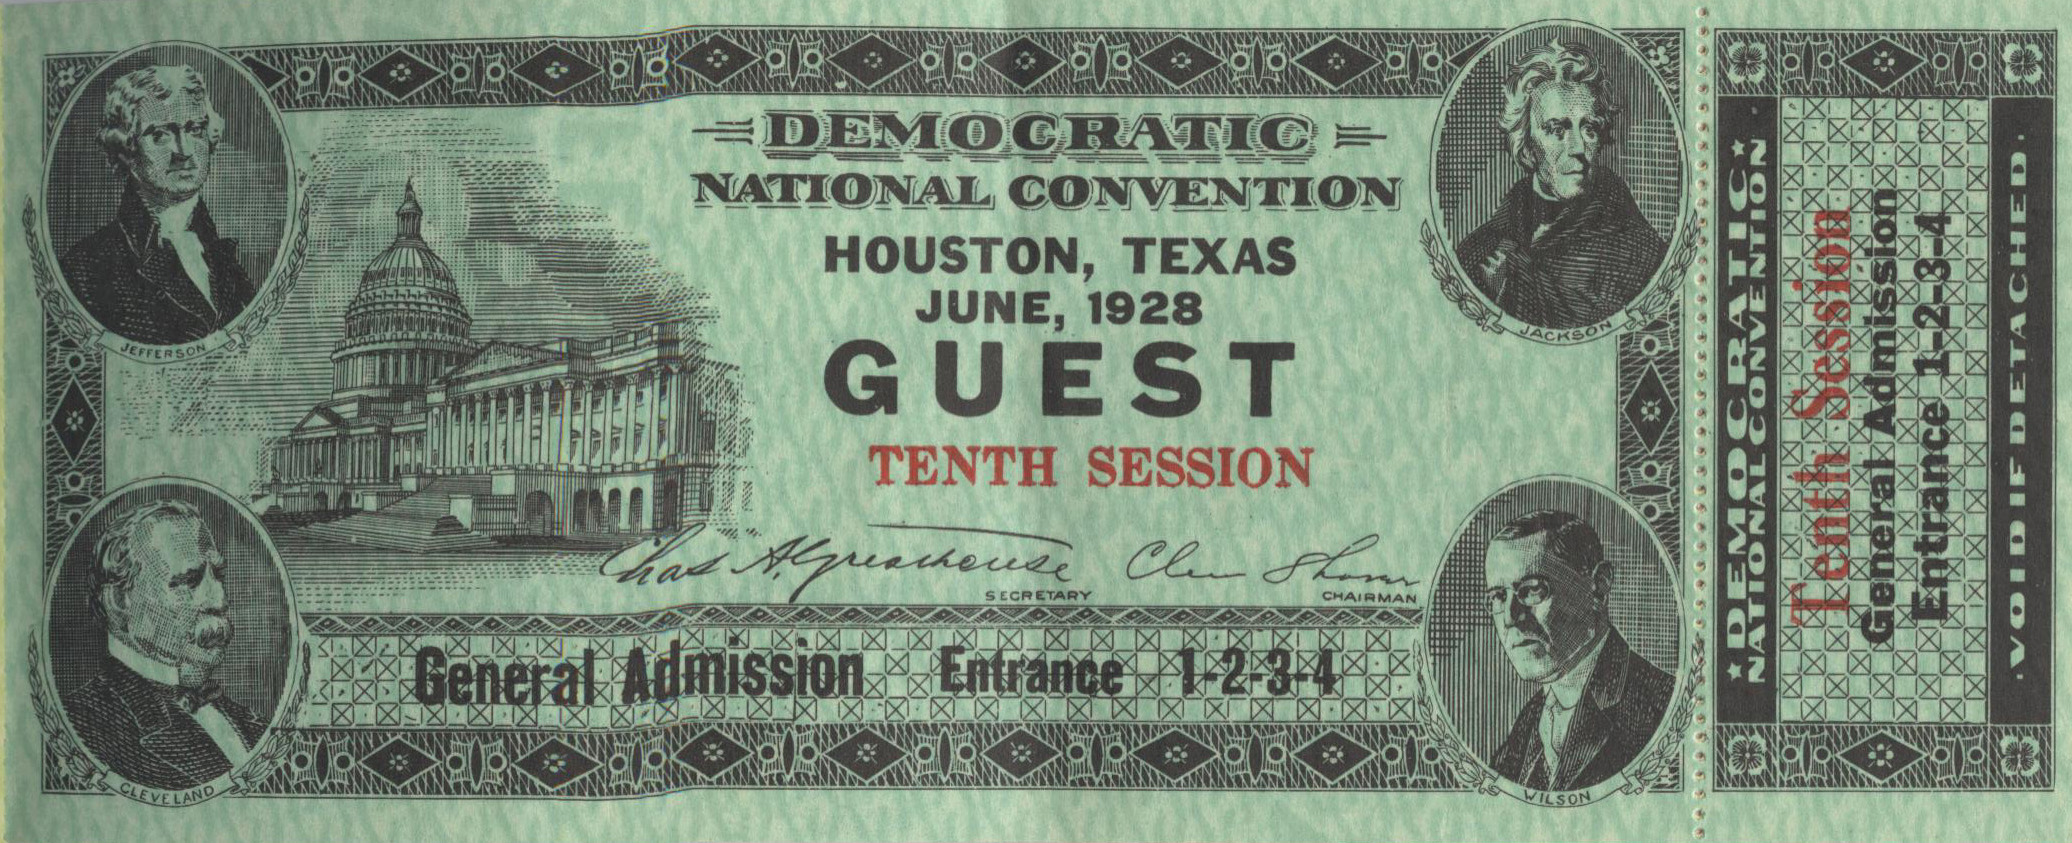 Tickets to the Convention,  Heritage Society Permanent Collection